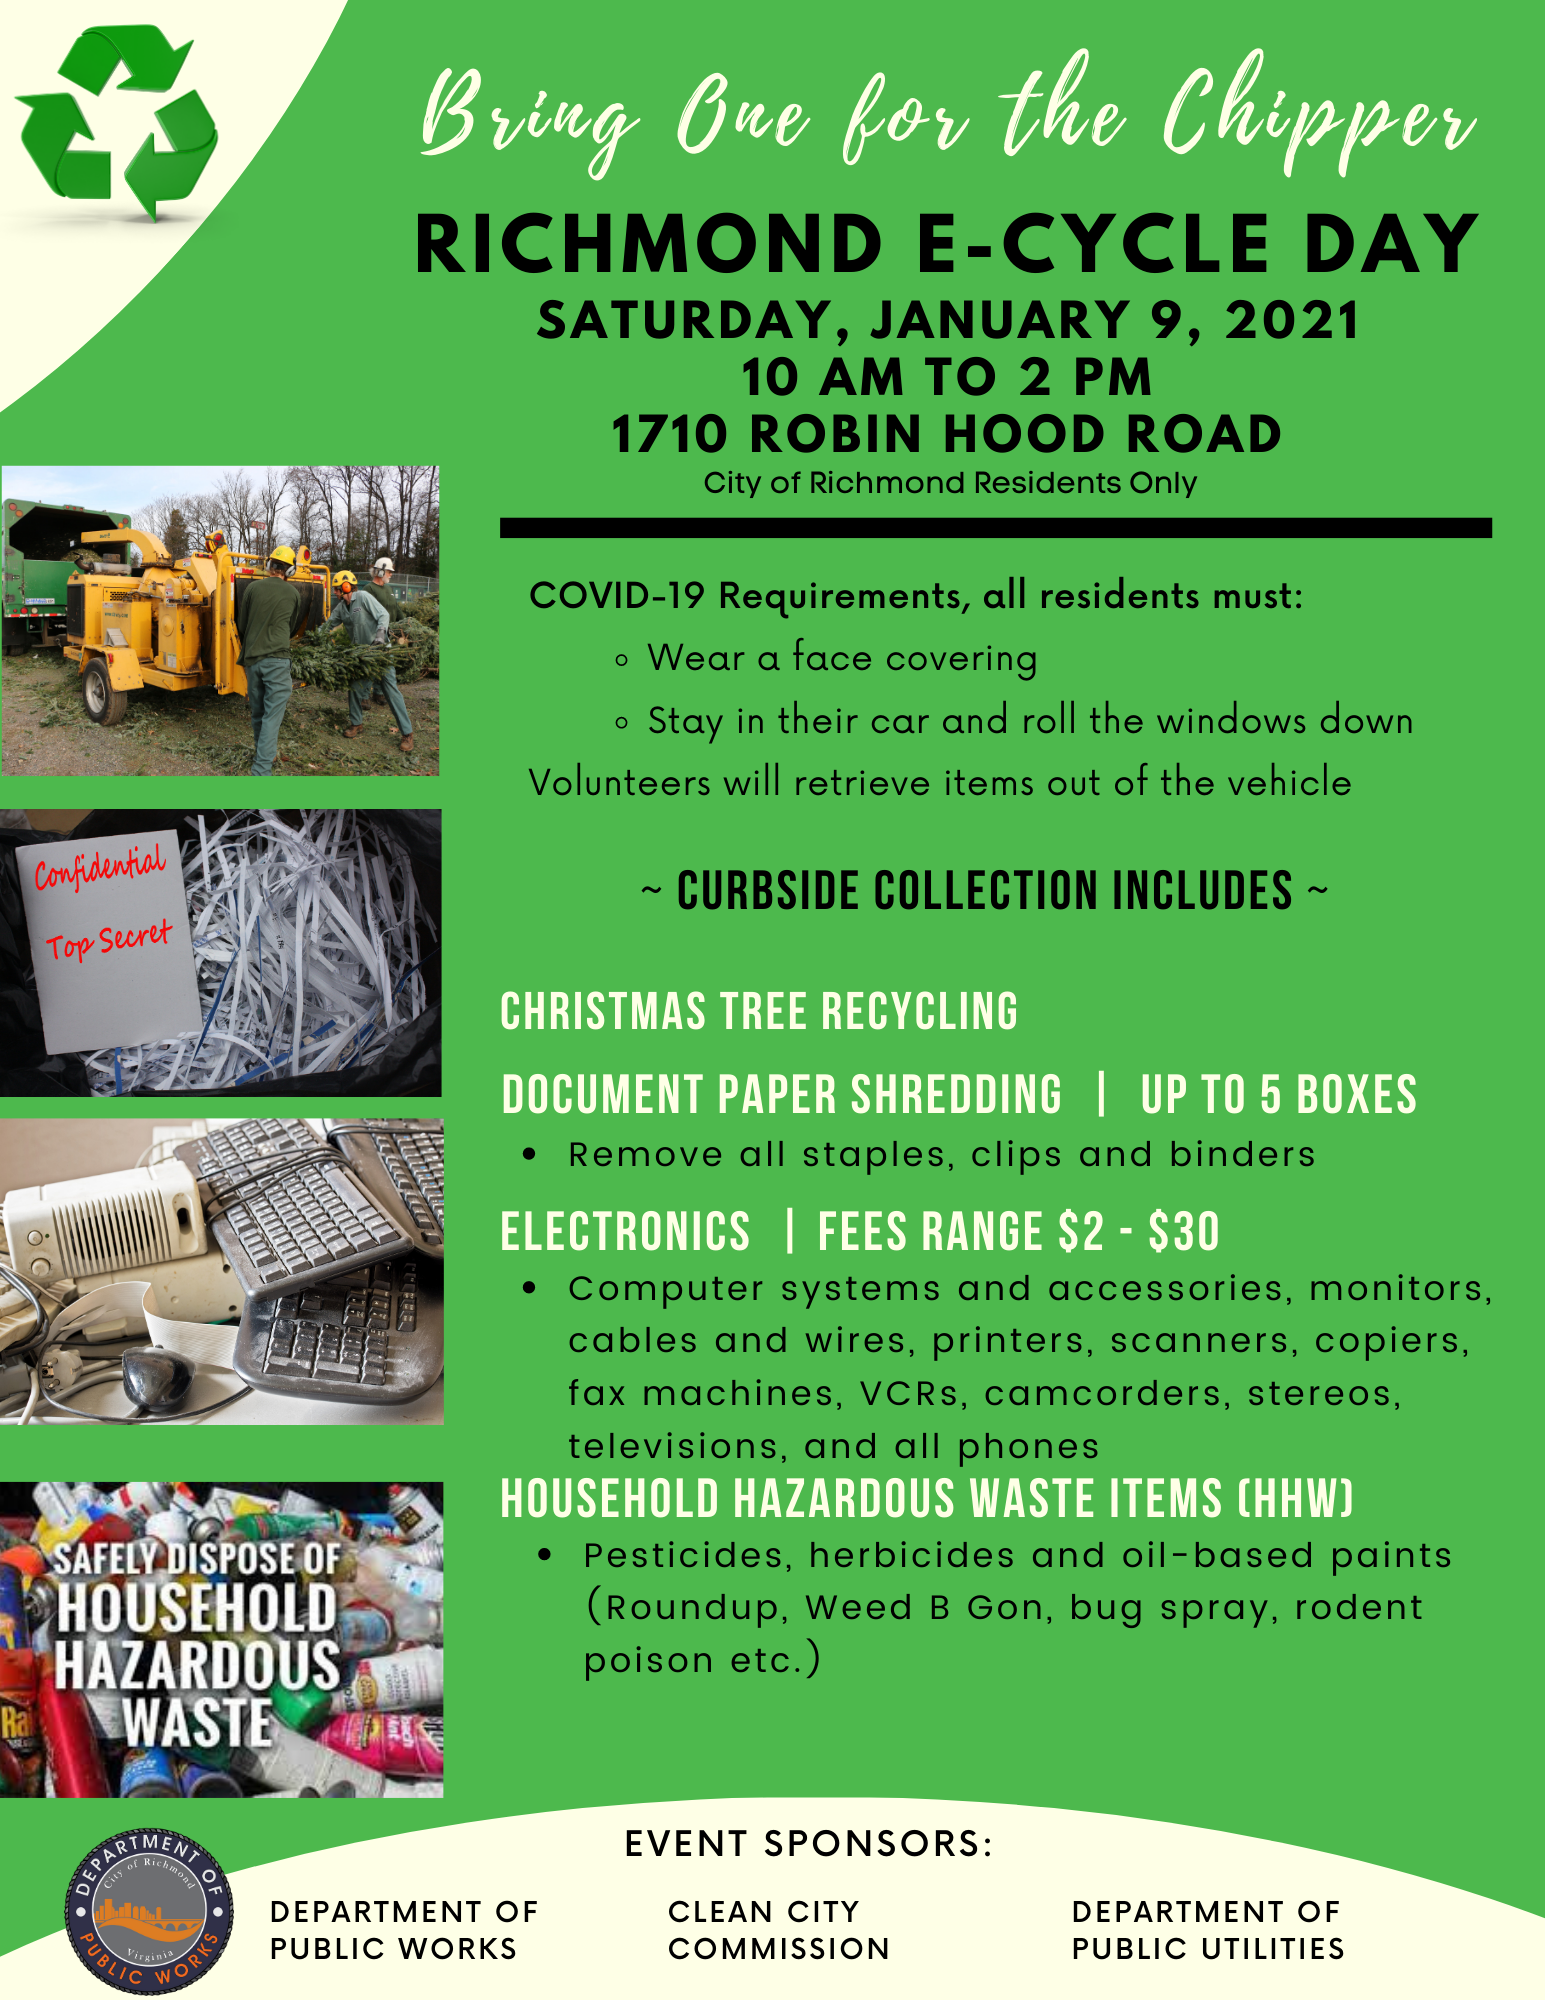 Bring One for the Chipper - Richmond ECycle Event January 9 2021